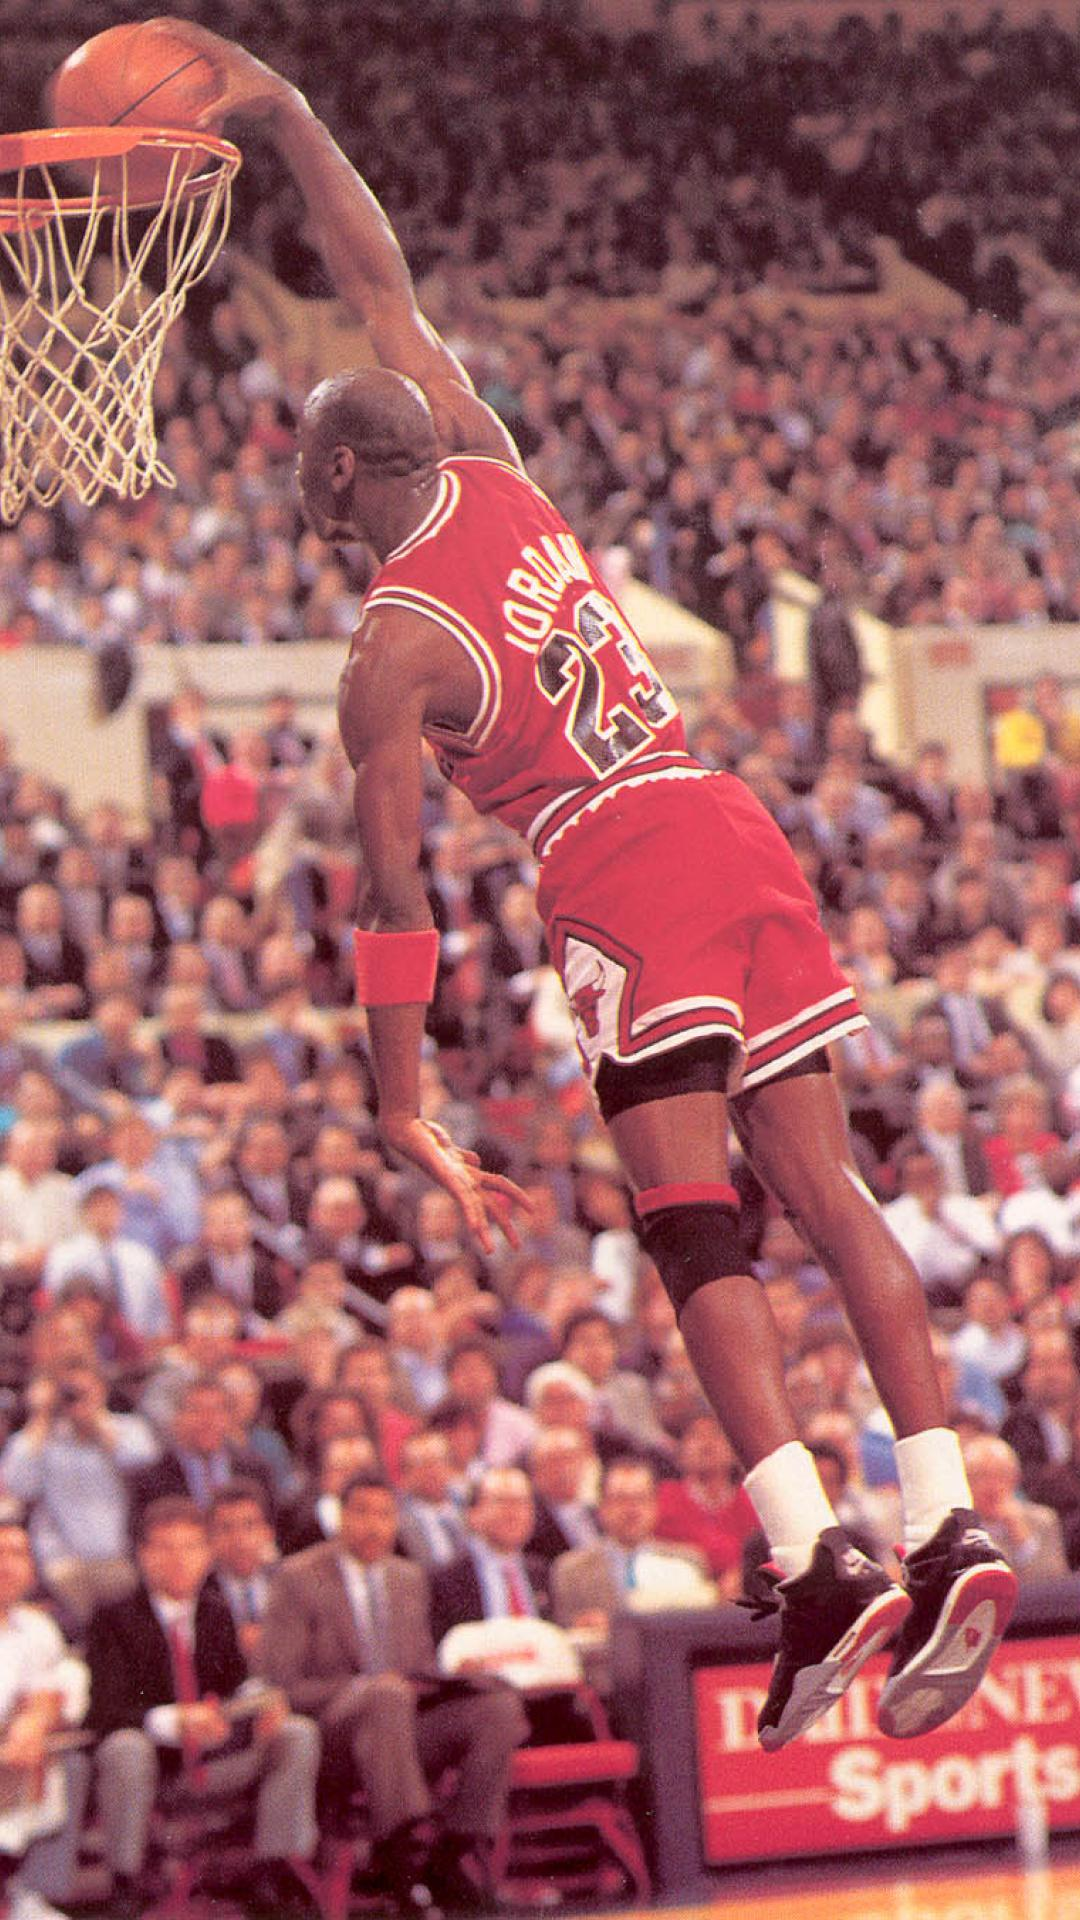 1080x1920px Michael Jordan Iphone 6 Wallpaper Wallpapersafari